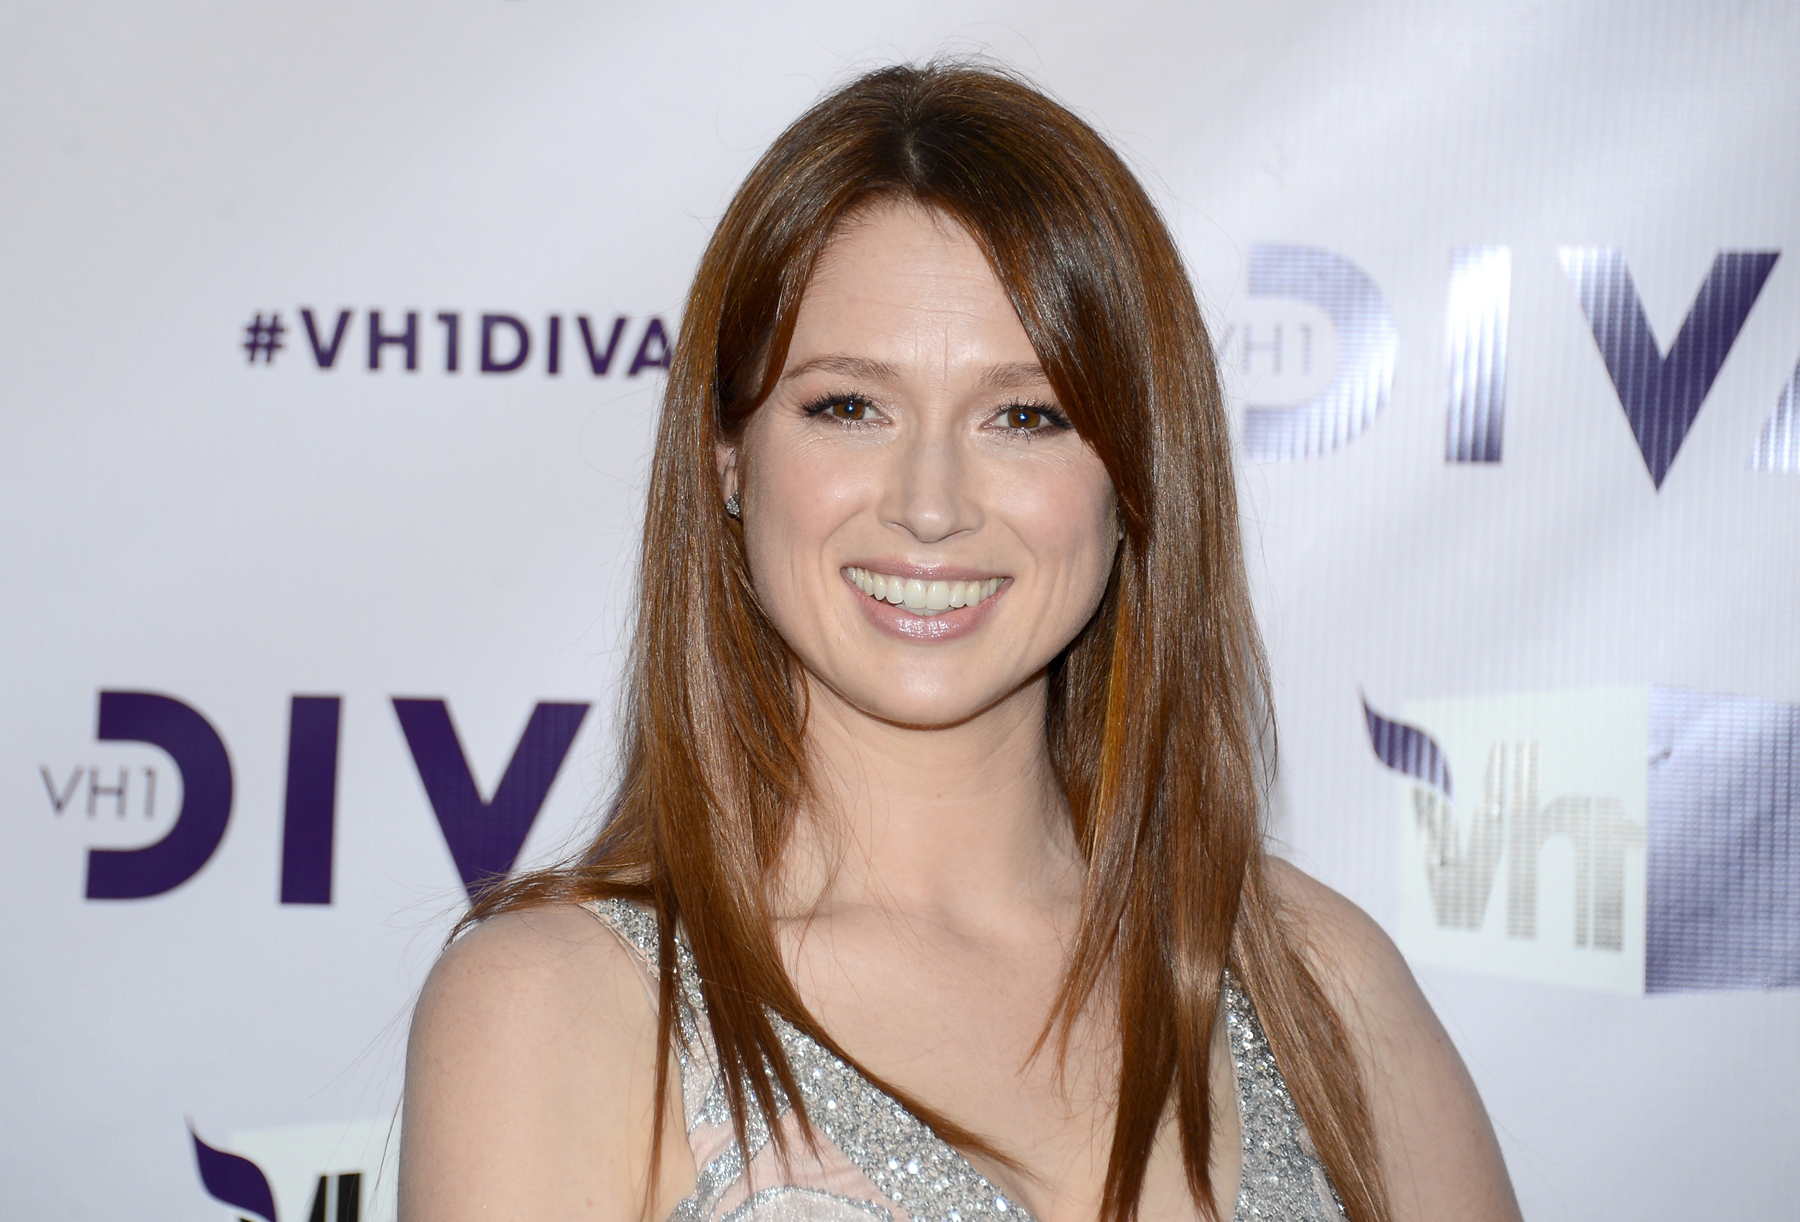 Tina Fey and Ellie Kemper Sitcom Coming to NBC – Rolling Stone